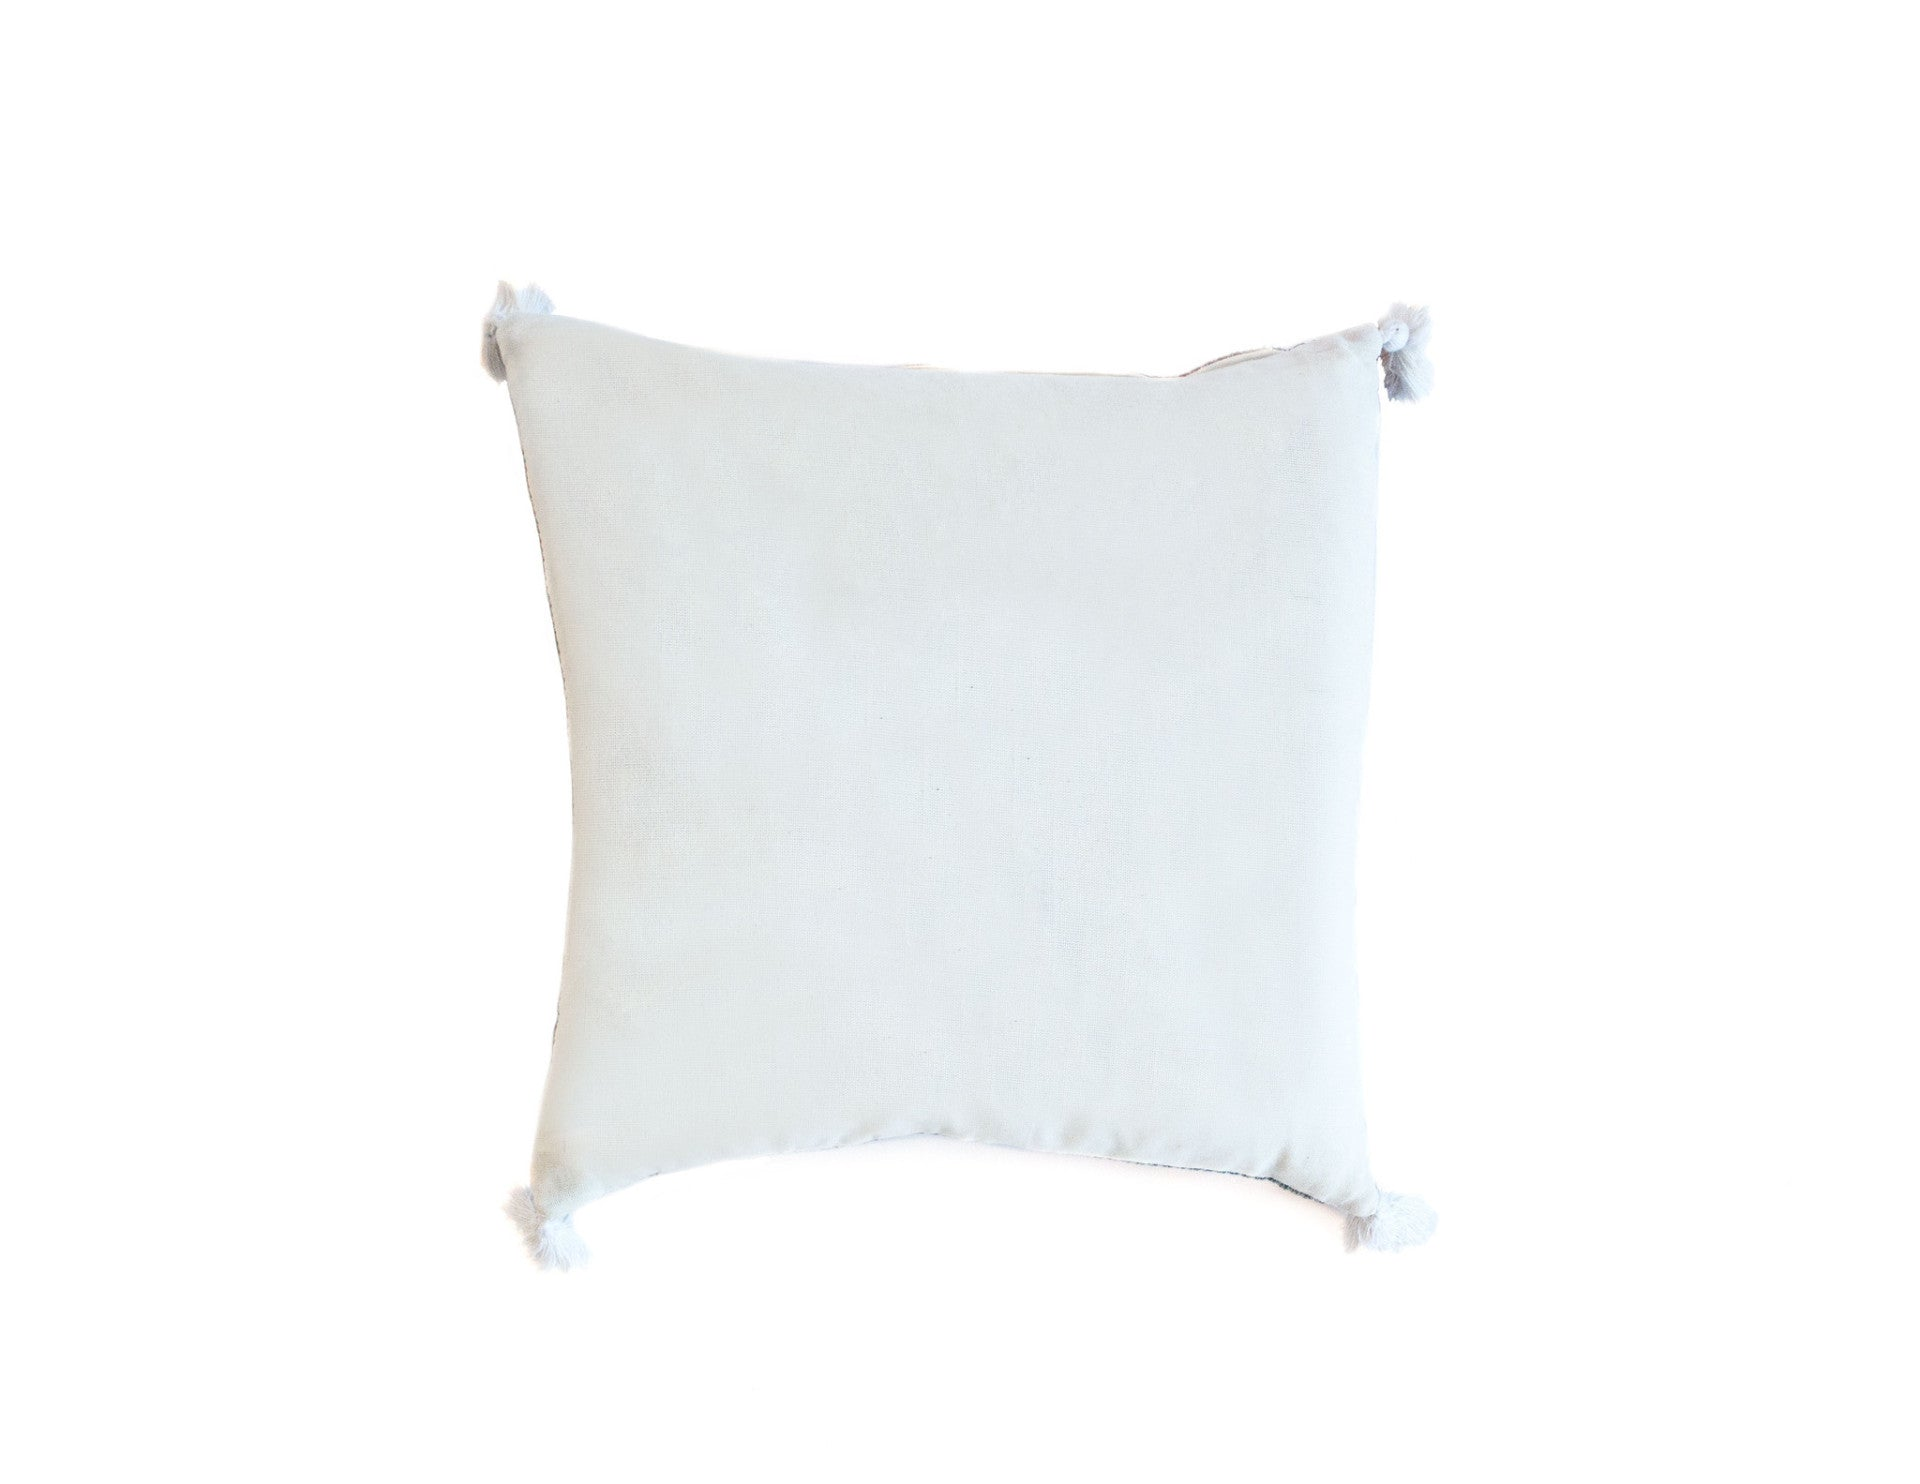 "Handmade Linen Pillow Covers (18""x18"") - White"